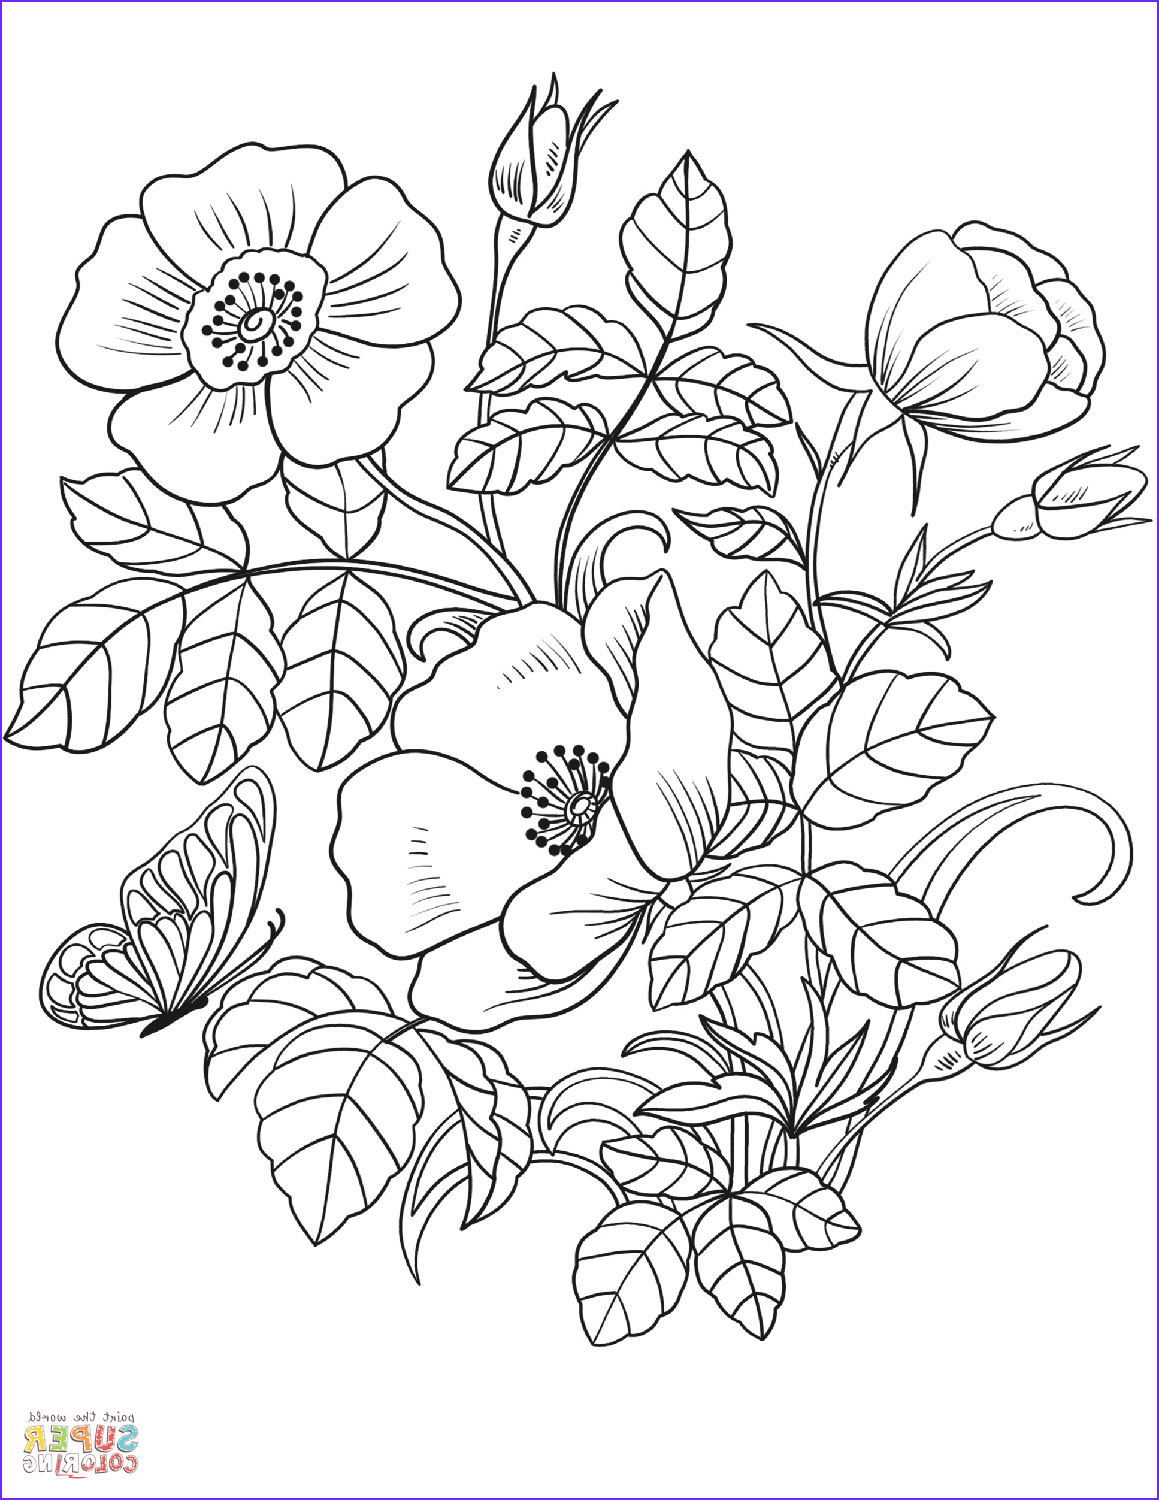 Flower Coloring Sheet Inspirational Image Spring Flowers Coloring Page